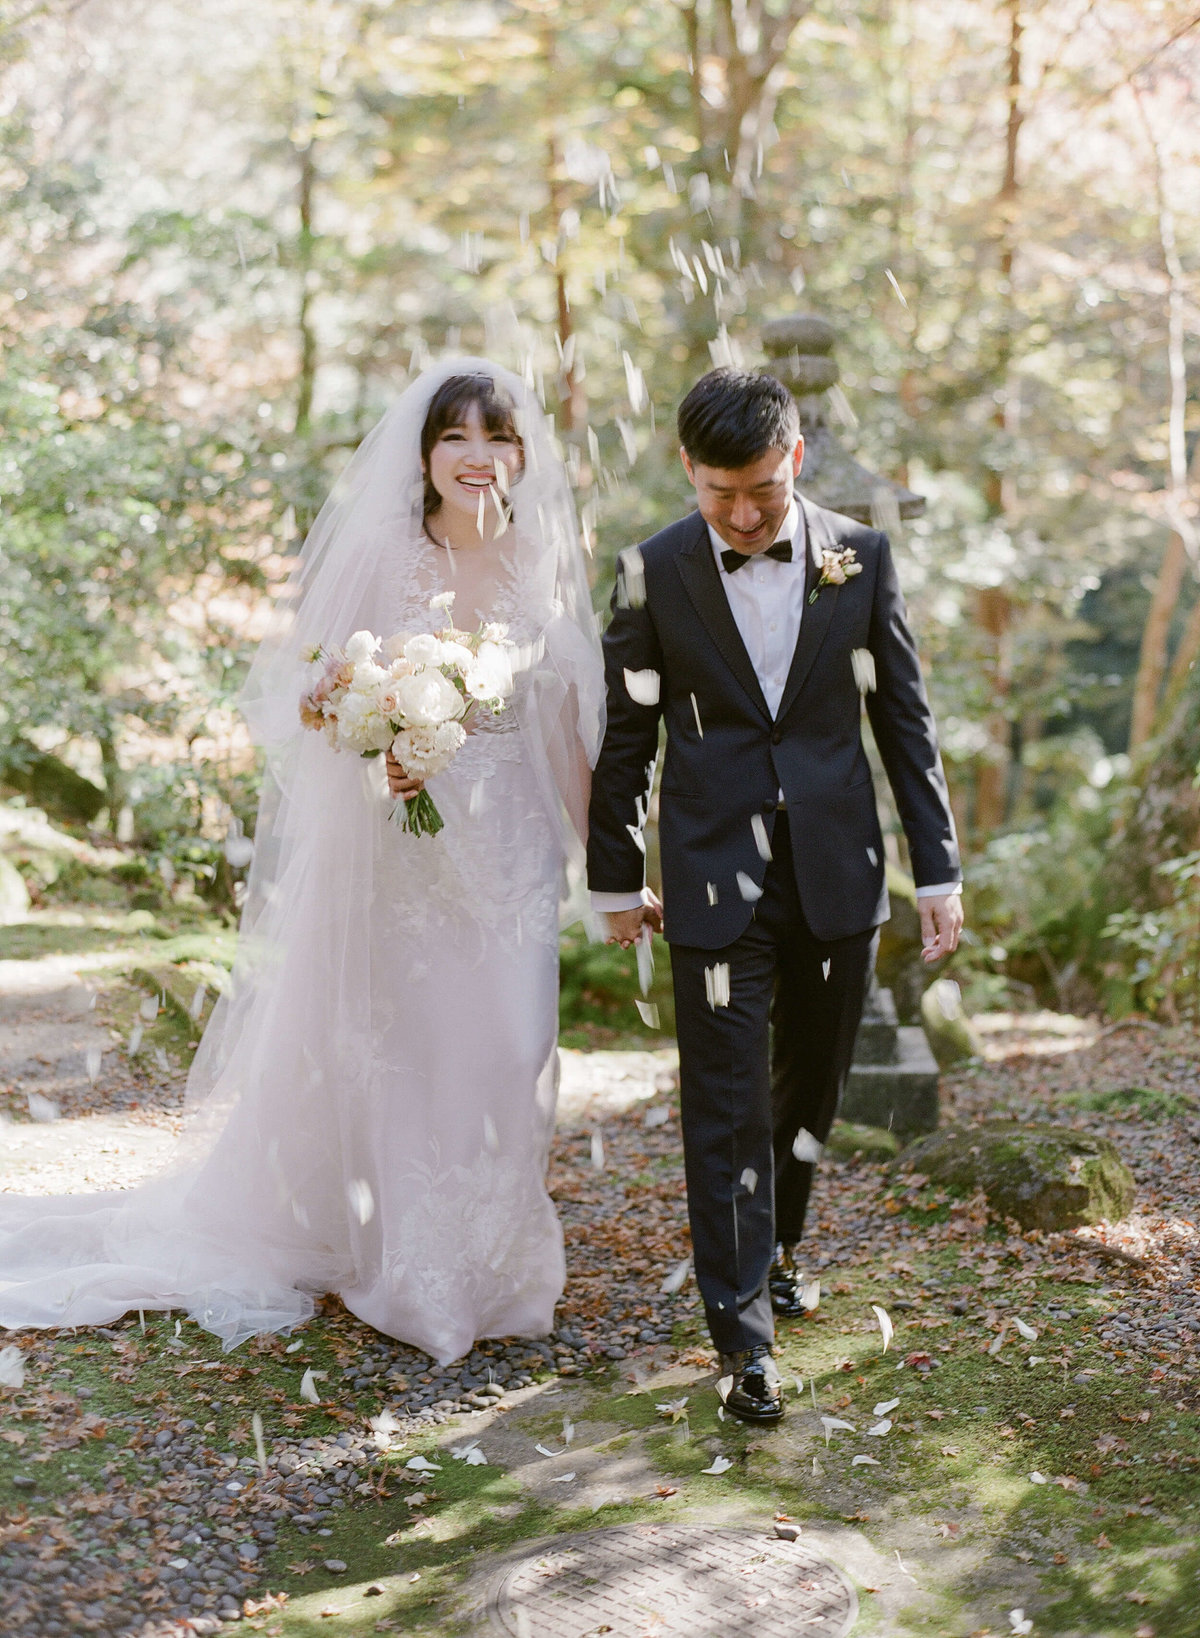 12-KTMerry-weddings-private-ceremony-japan